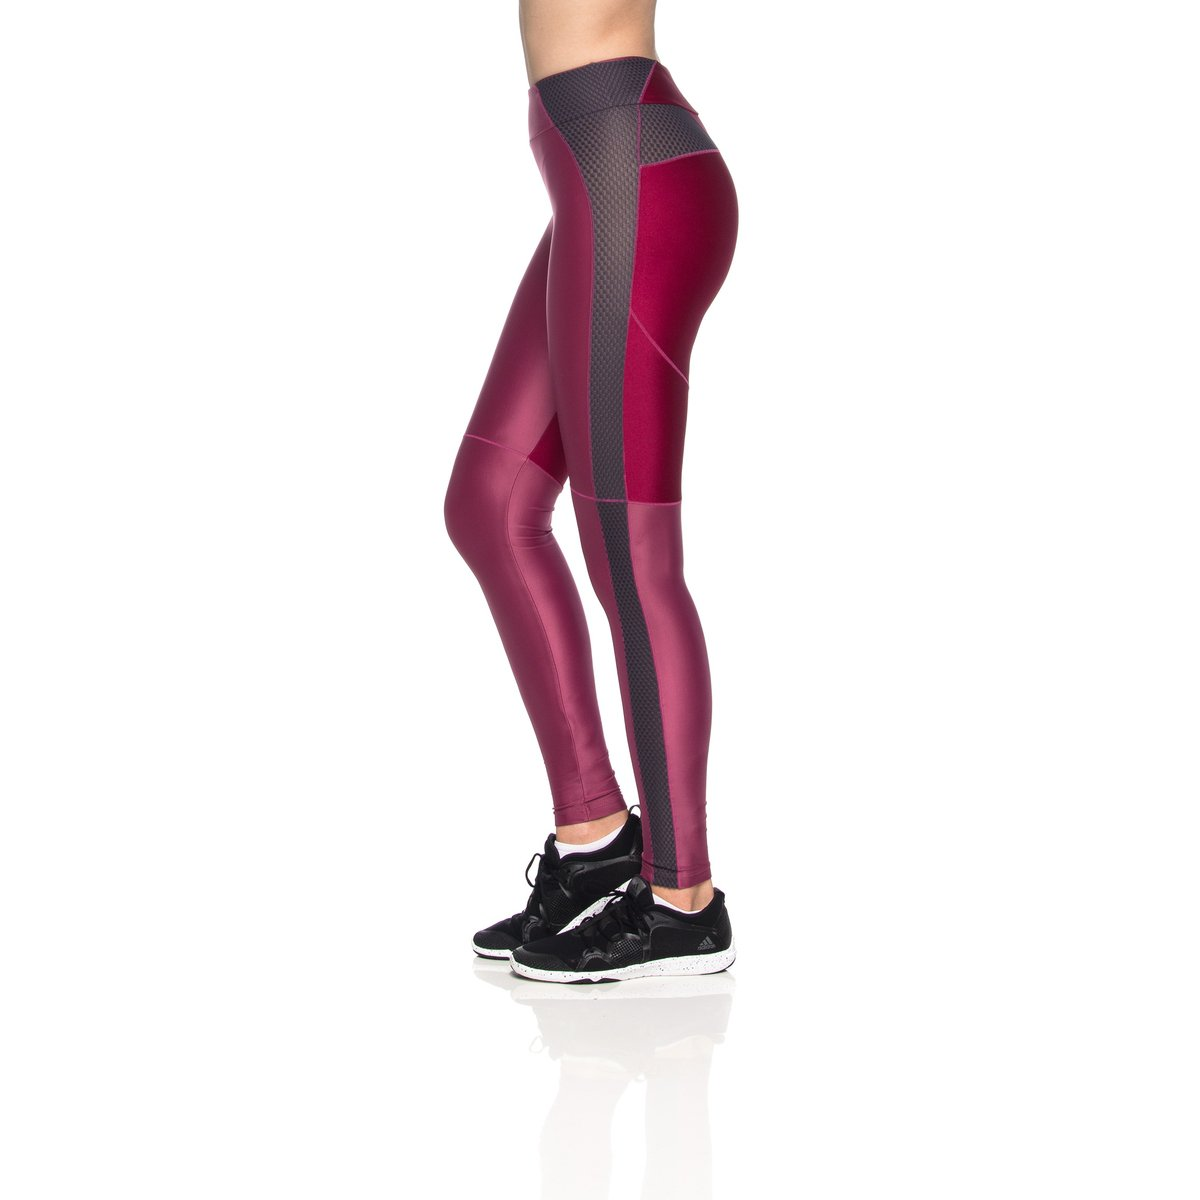 Bordo Leggings Legging Antigo Antigo Bordo Bordô Intensity Fitness Textura M Intensity Fitness RnWCpRq